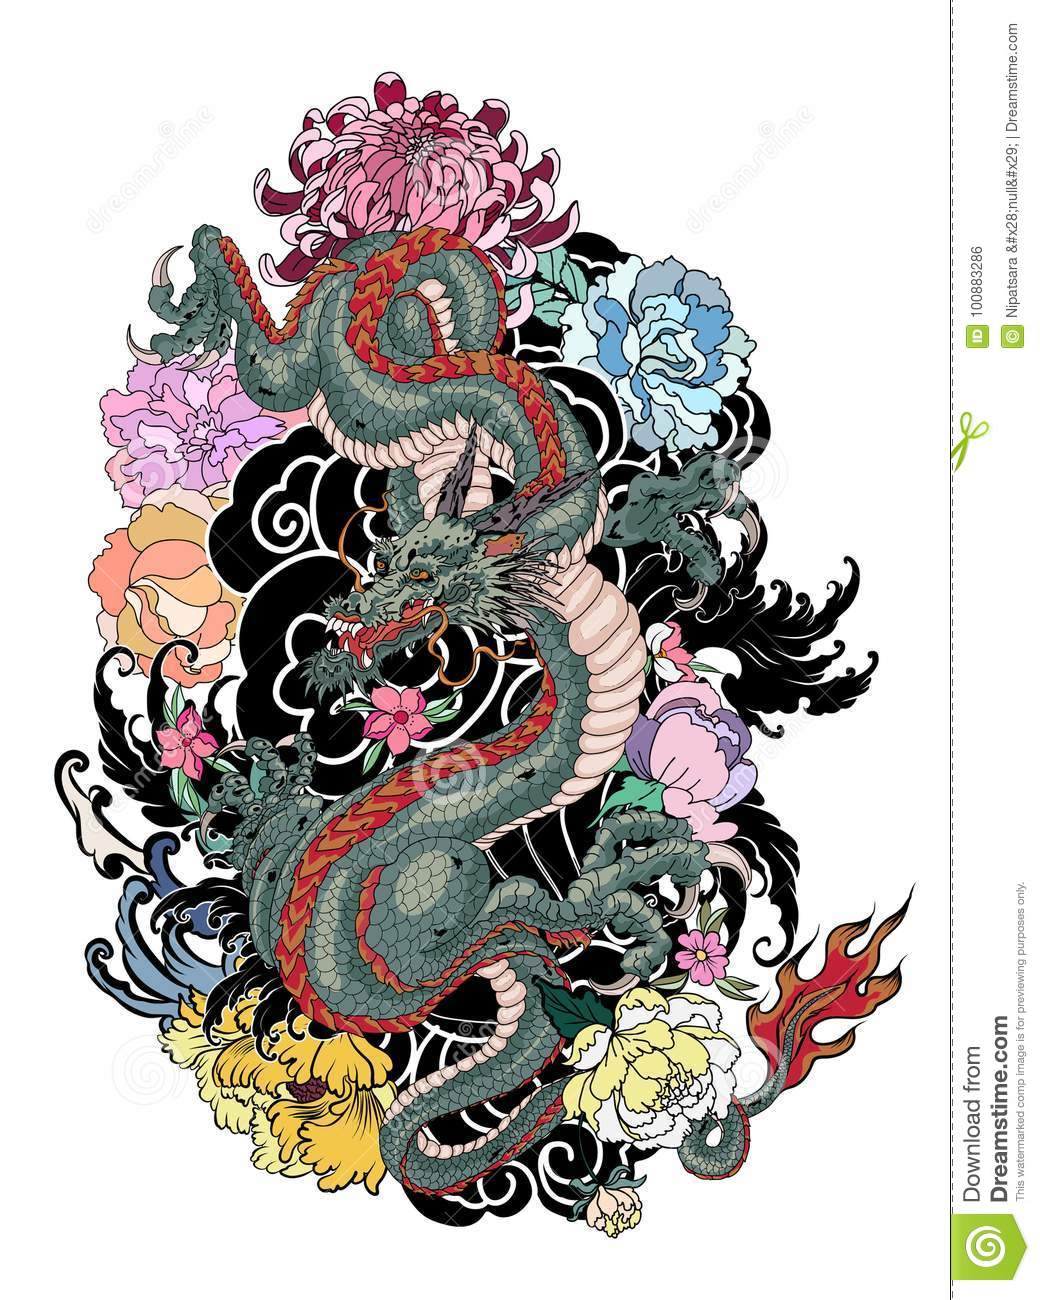 Japanese old dragon tattoo for arm stock vector illustration of japanese old dragon tattoo for arm coloring design izmirmasajfo Images